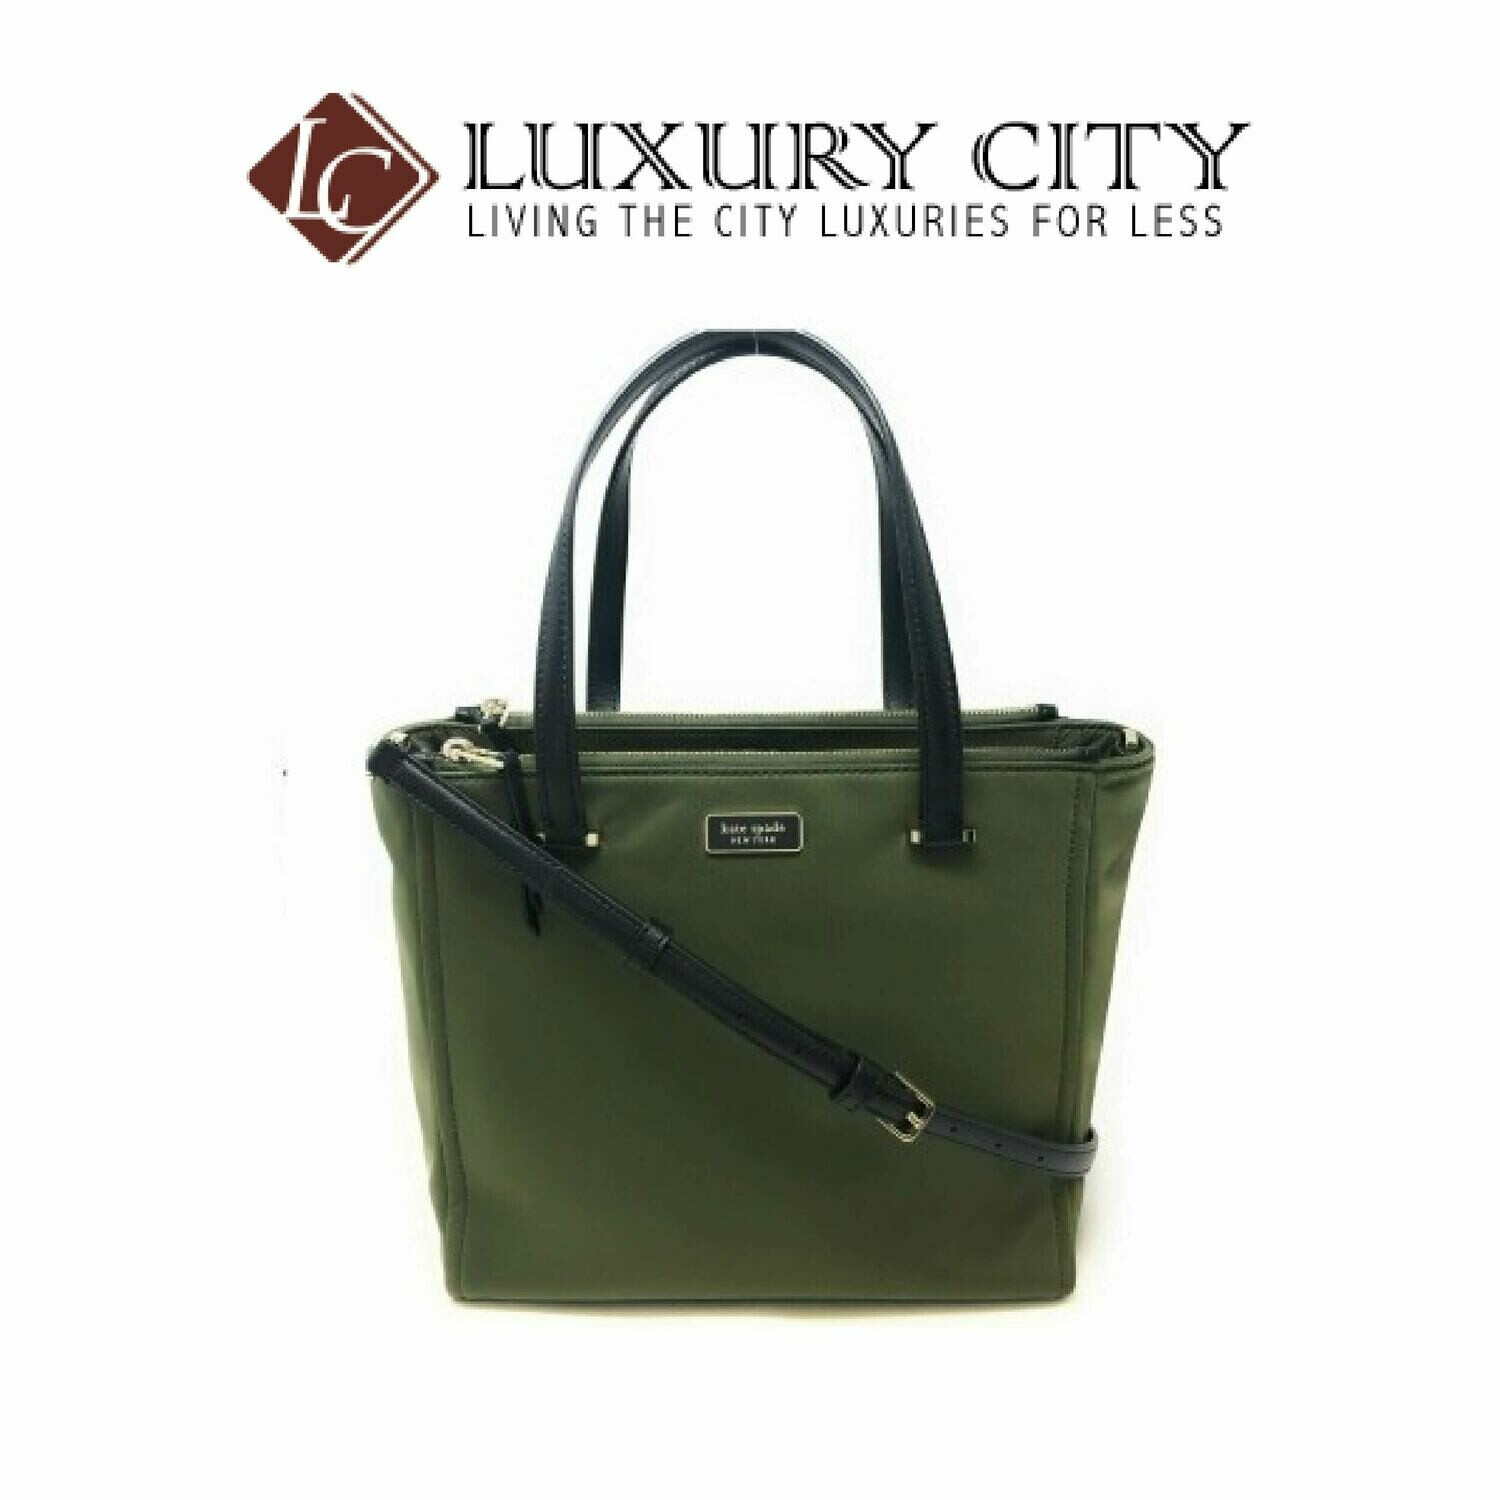 [Luxury City] Kate Spade Medium Satchel Dawn Sapling Handbag Green Katespade-WKRU5918